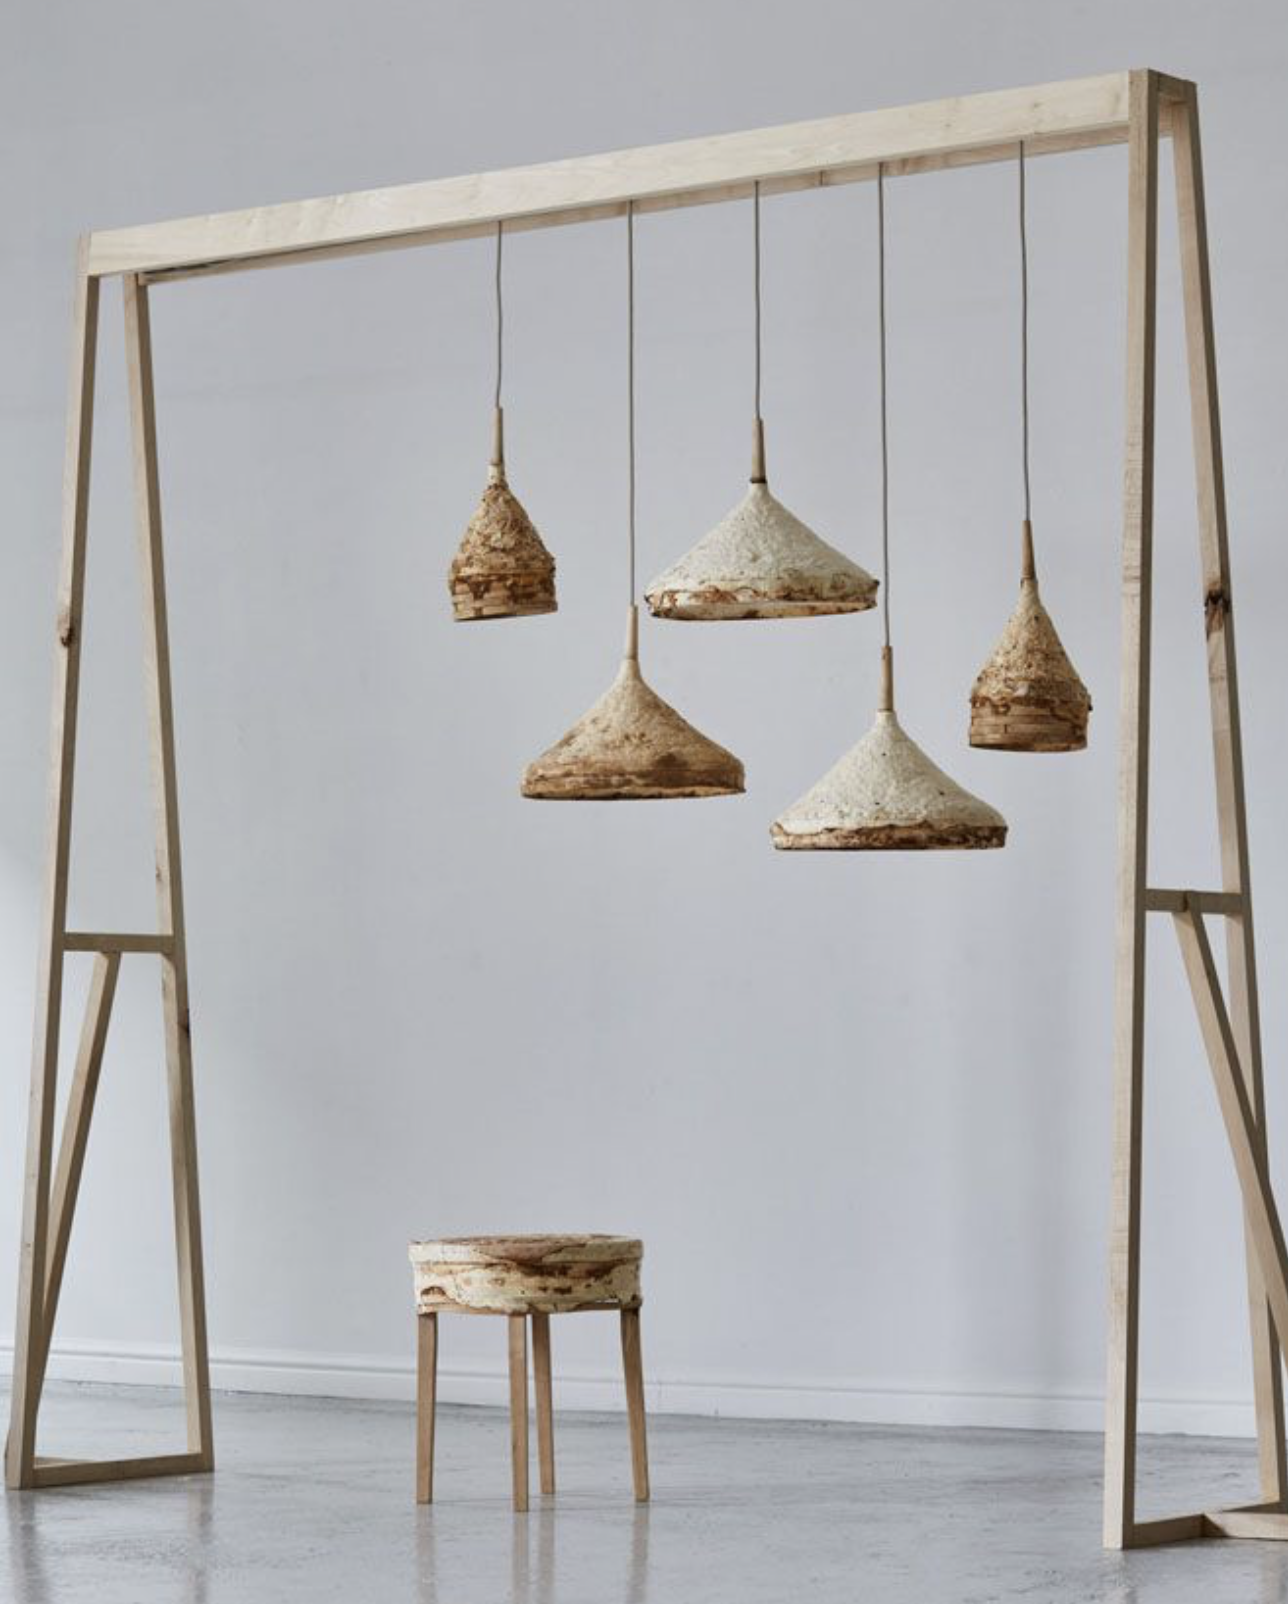 Mushroom mycelium is becoming a hyper eco material for weaving and furniture